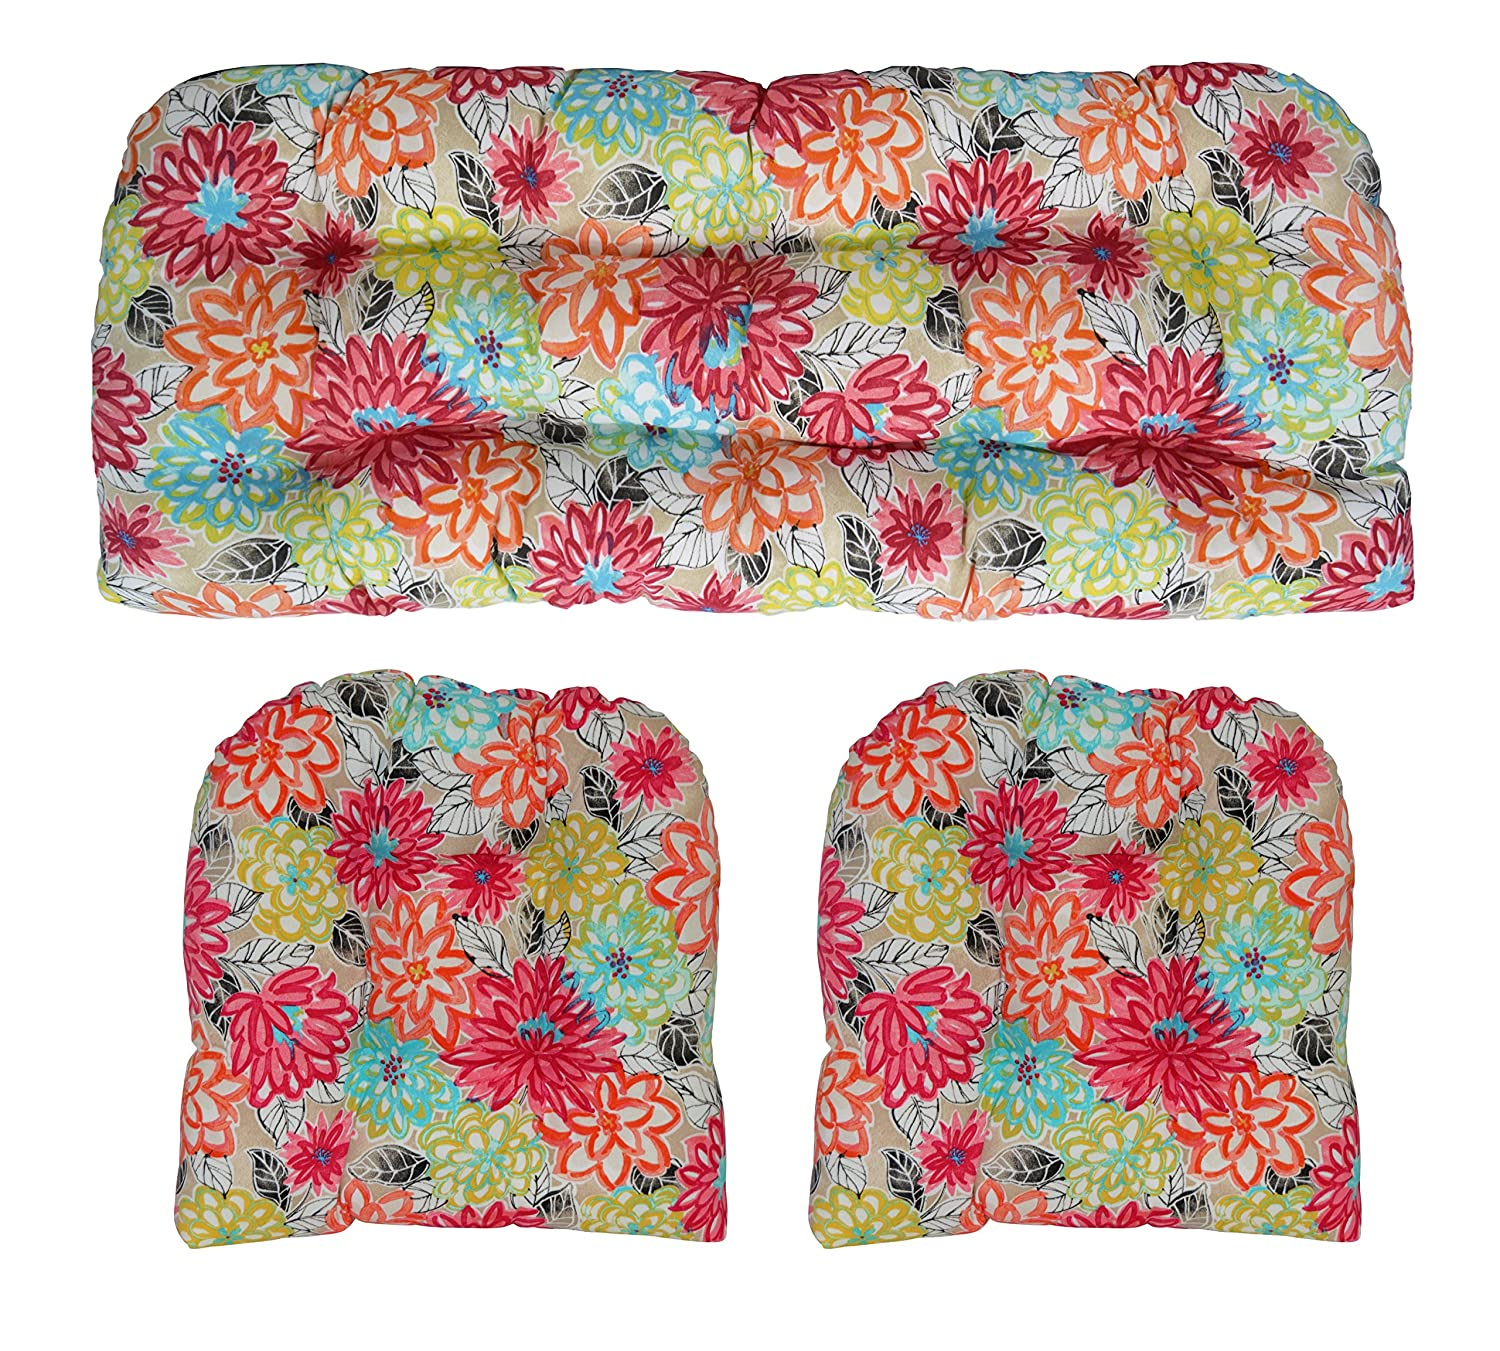 RSH D cor Indoor Outdoor Floral Wicker Tufted 3 Piece Set 1 – Loveseat Settee 2 – U – Shape Chair Cushions – Yellow, Orange, Blue, Pink Bright Artistic Floral Cushions 41 x 19 19 x 19